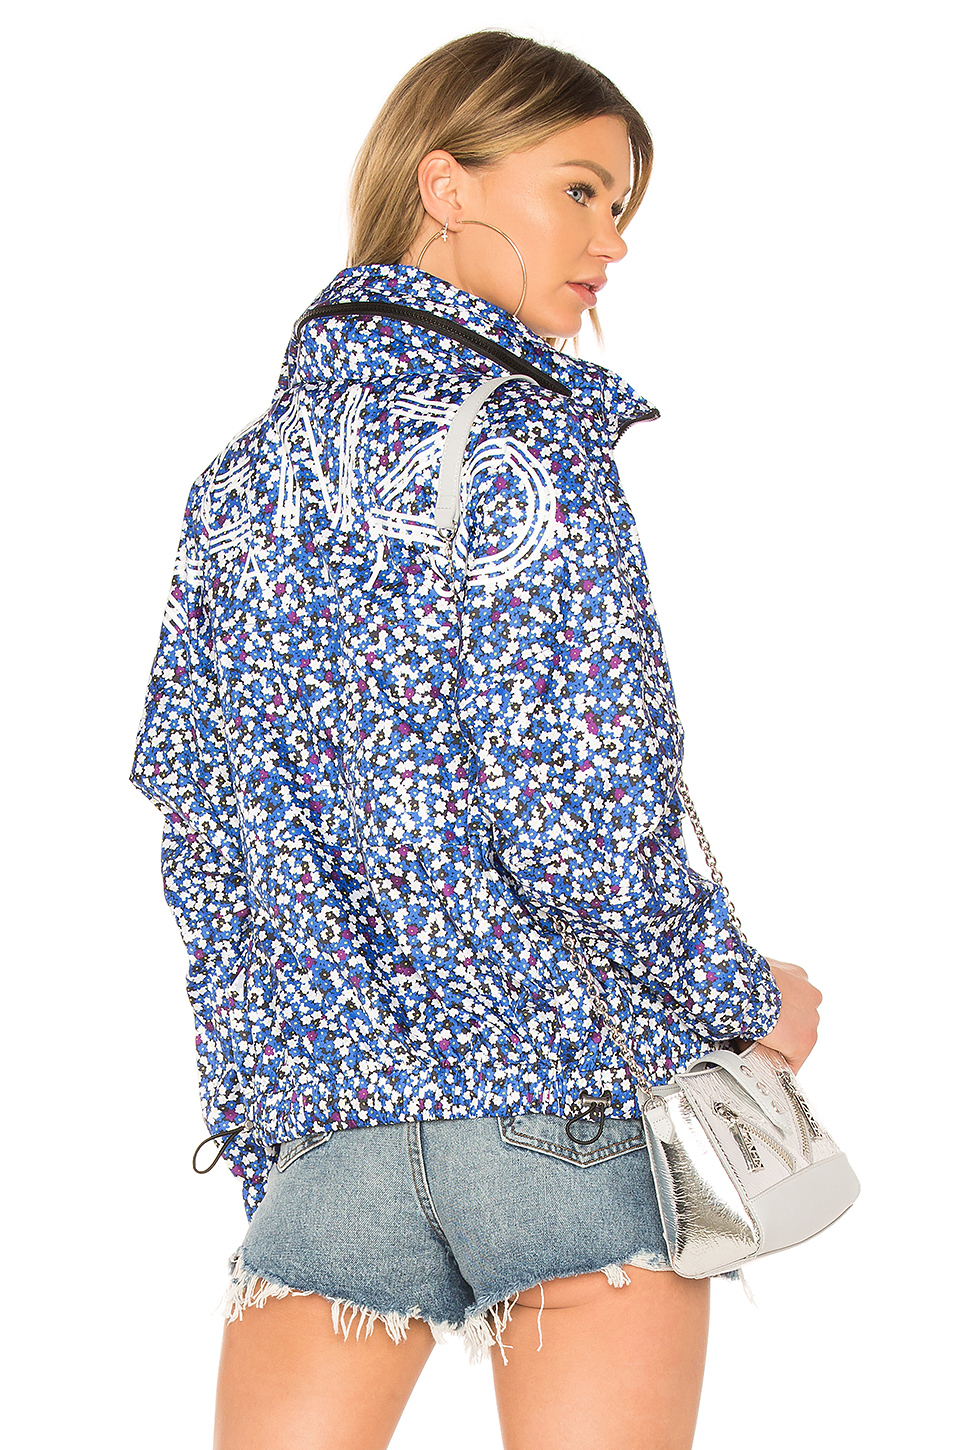 Kenzo Printed Windbreaker in Navy Blue